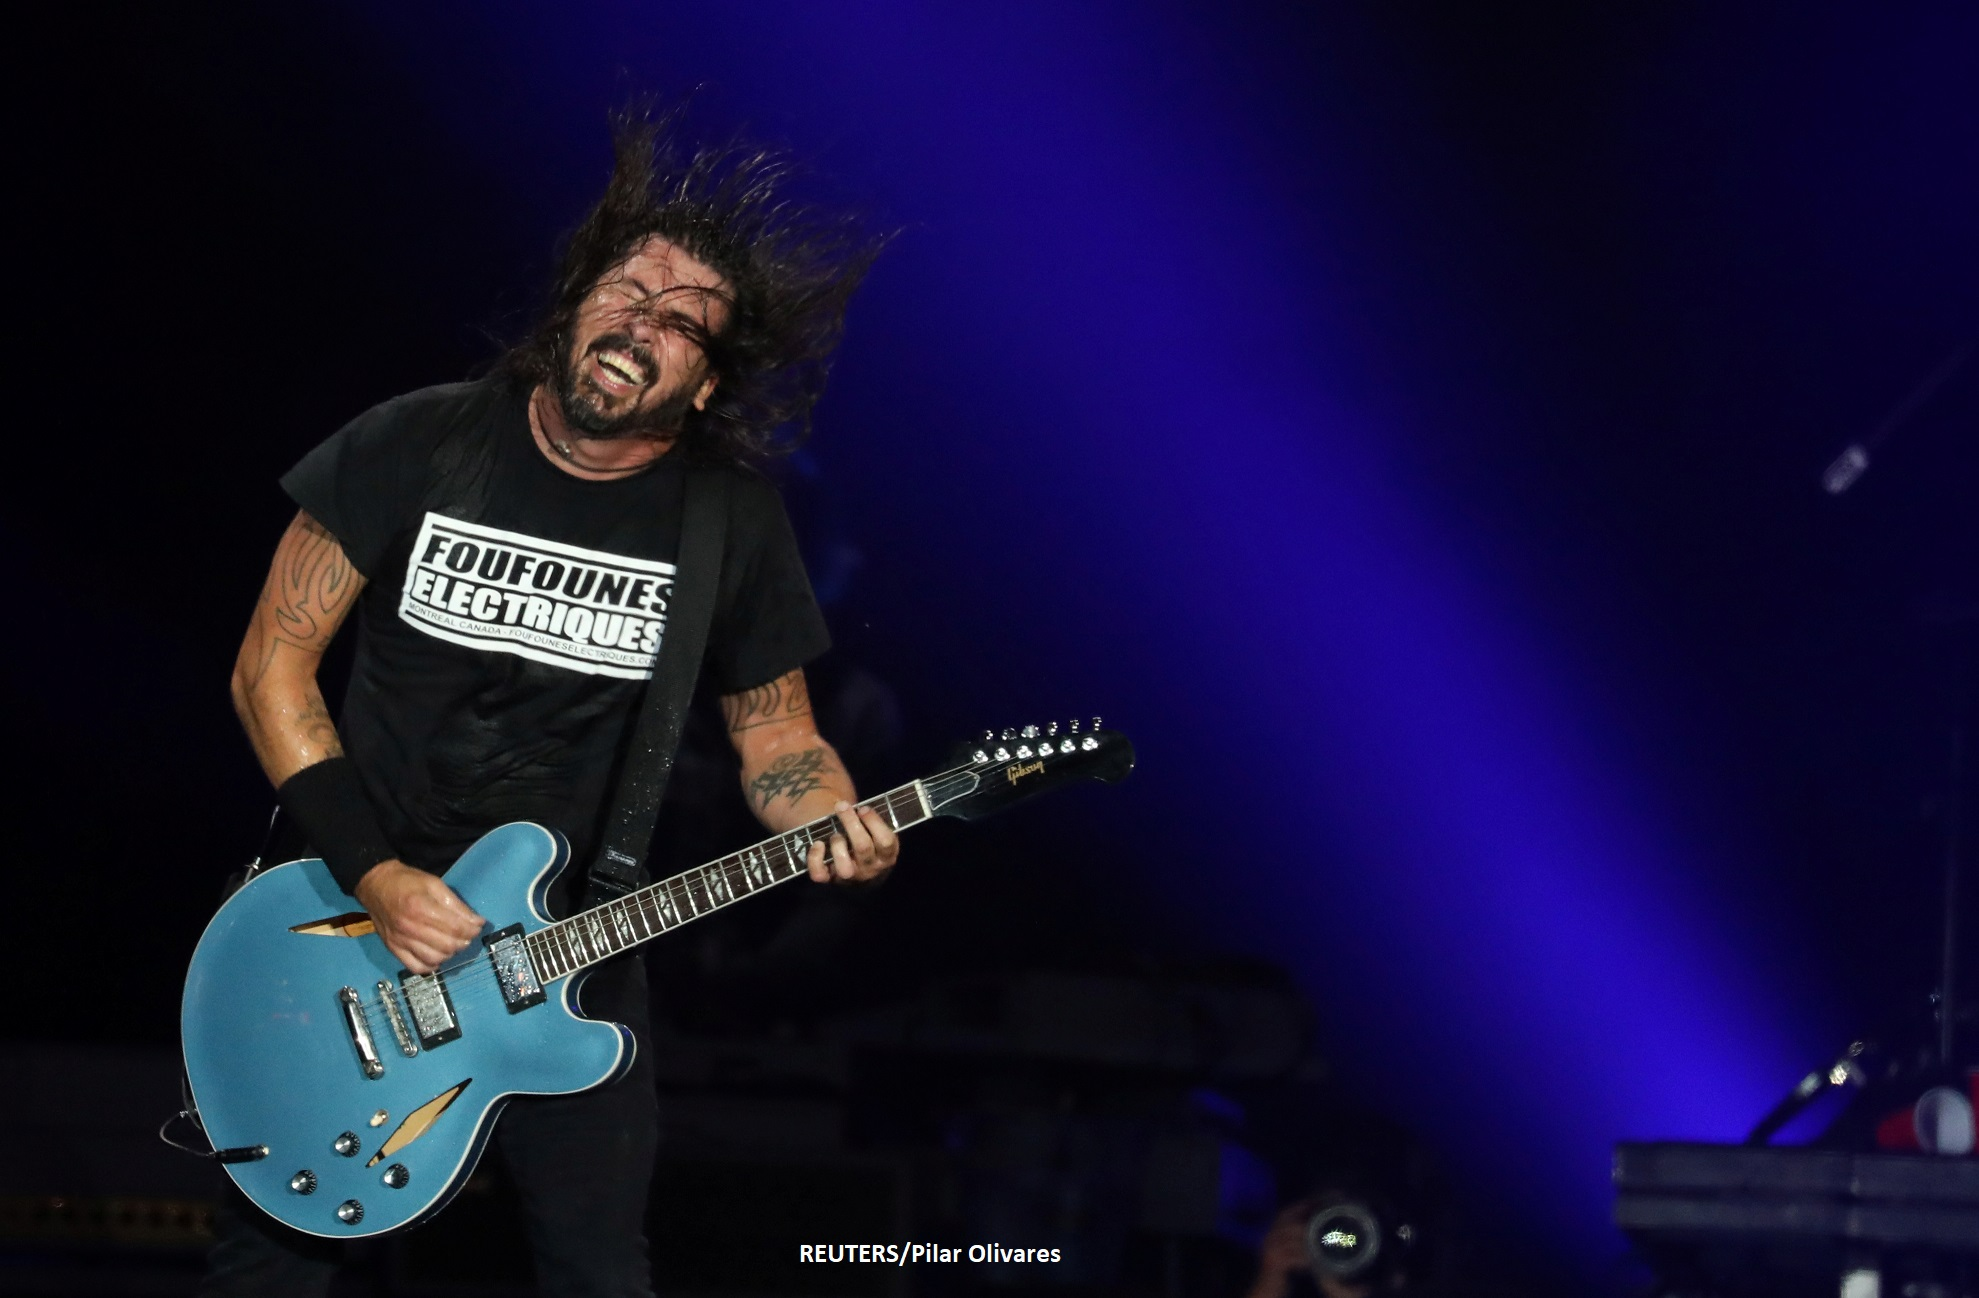 Dave Grohl of Foo Fighters band performs during the Rock in Rio Music Festival in Rio de Janeiro